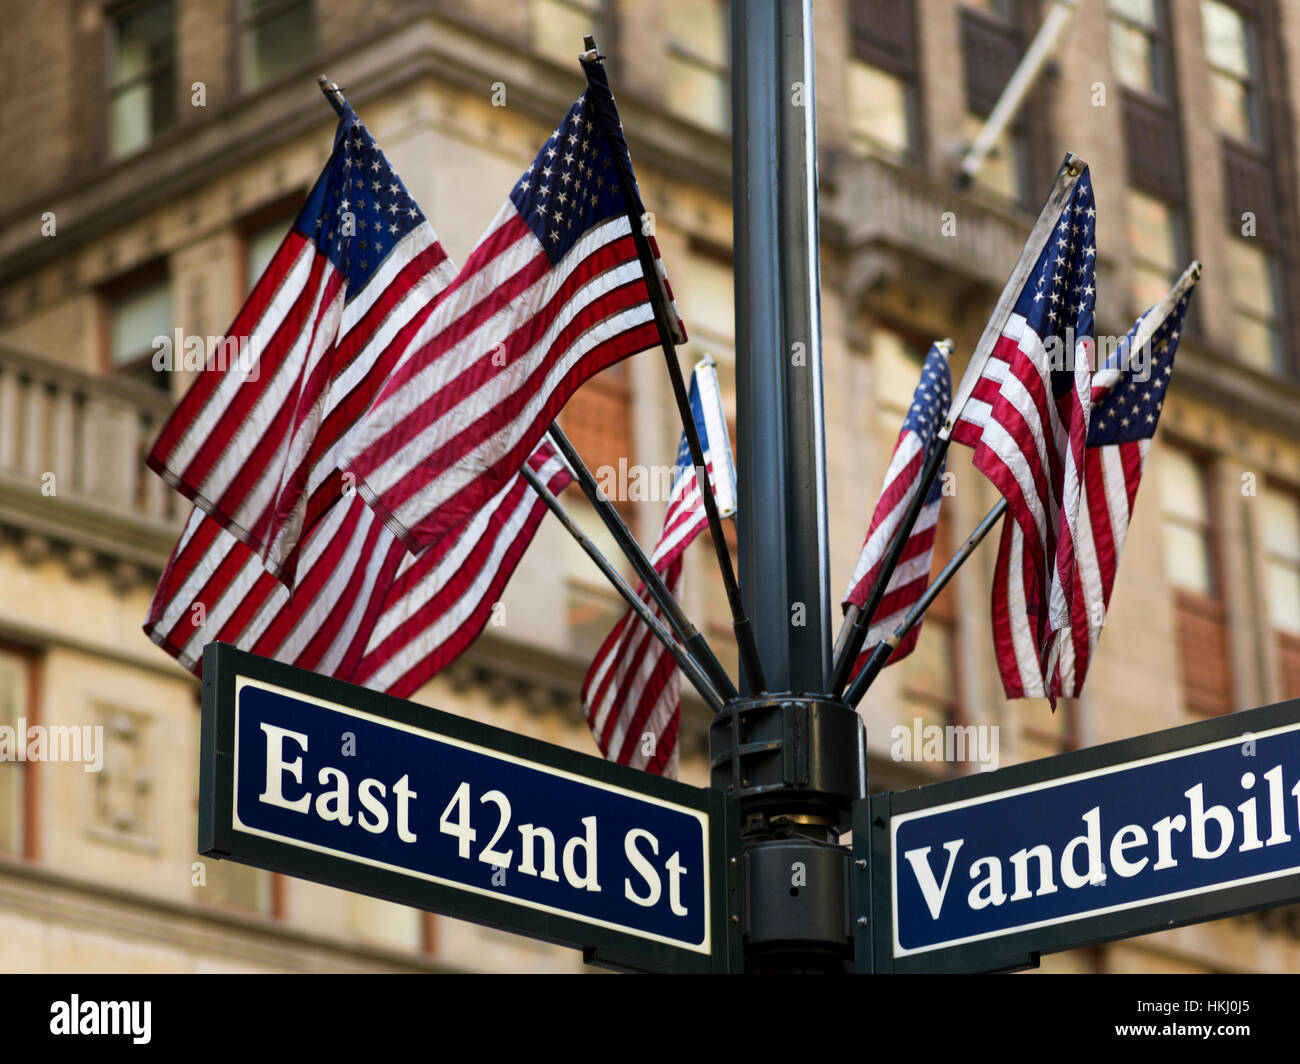 American flags on a pole above the street signs at the intersection of East 42nd Street and Vanderbilt - Stock Image